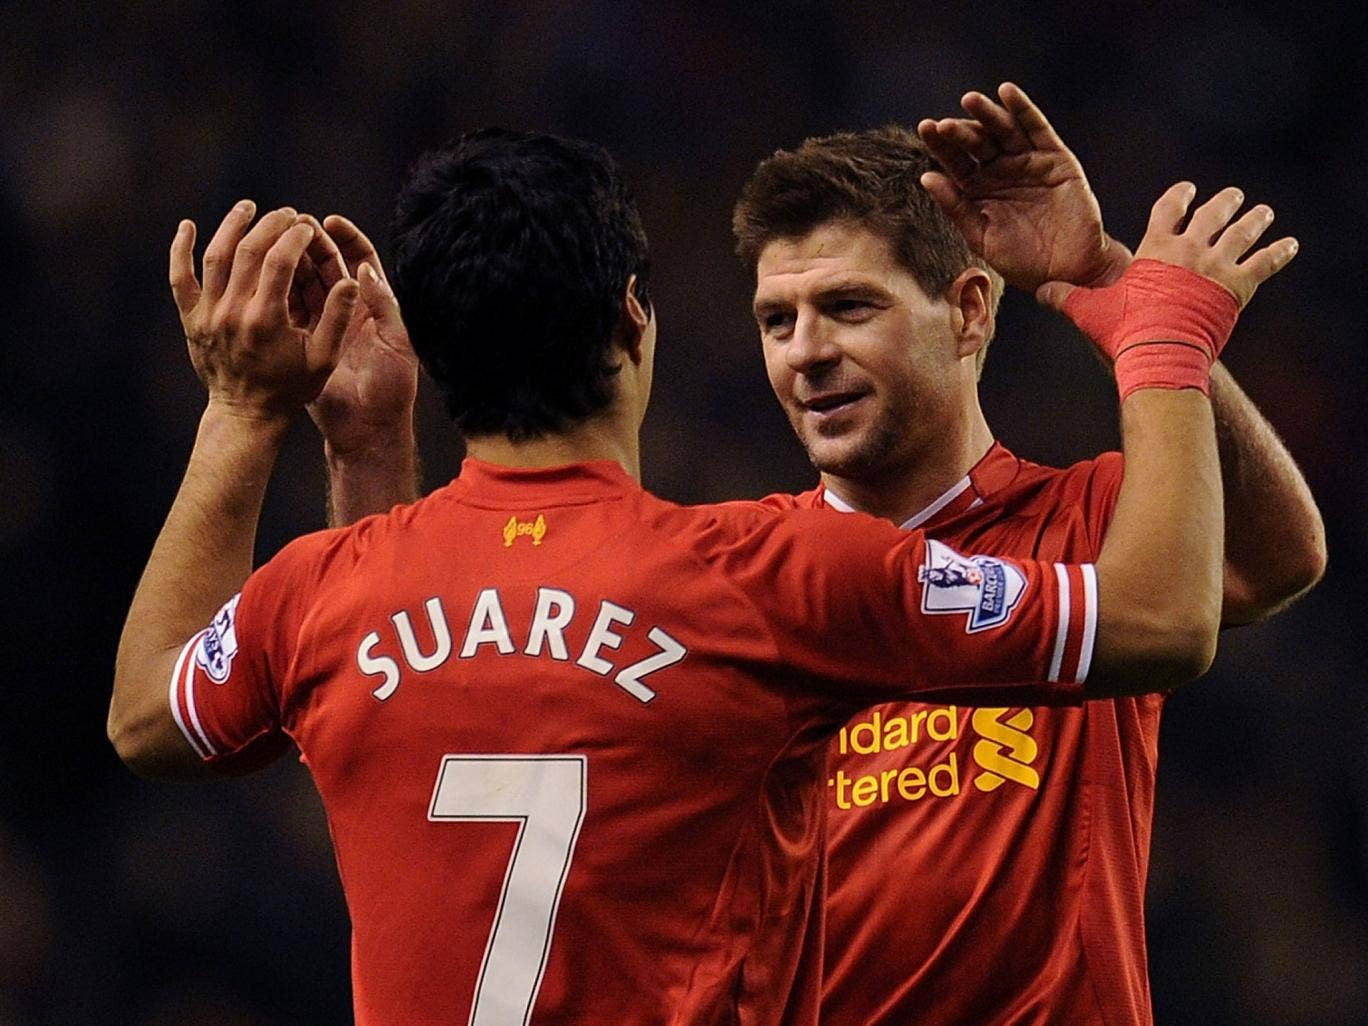 Steven Gerrard is one of the most intelligent players I have worked with